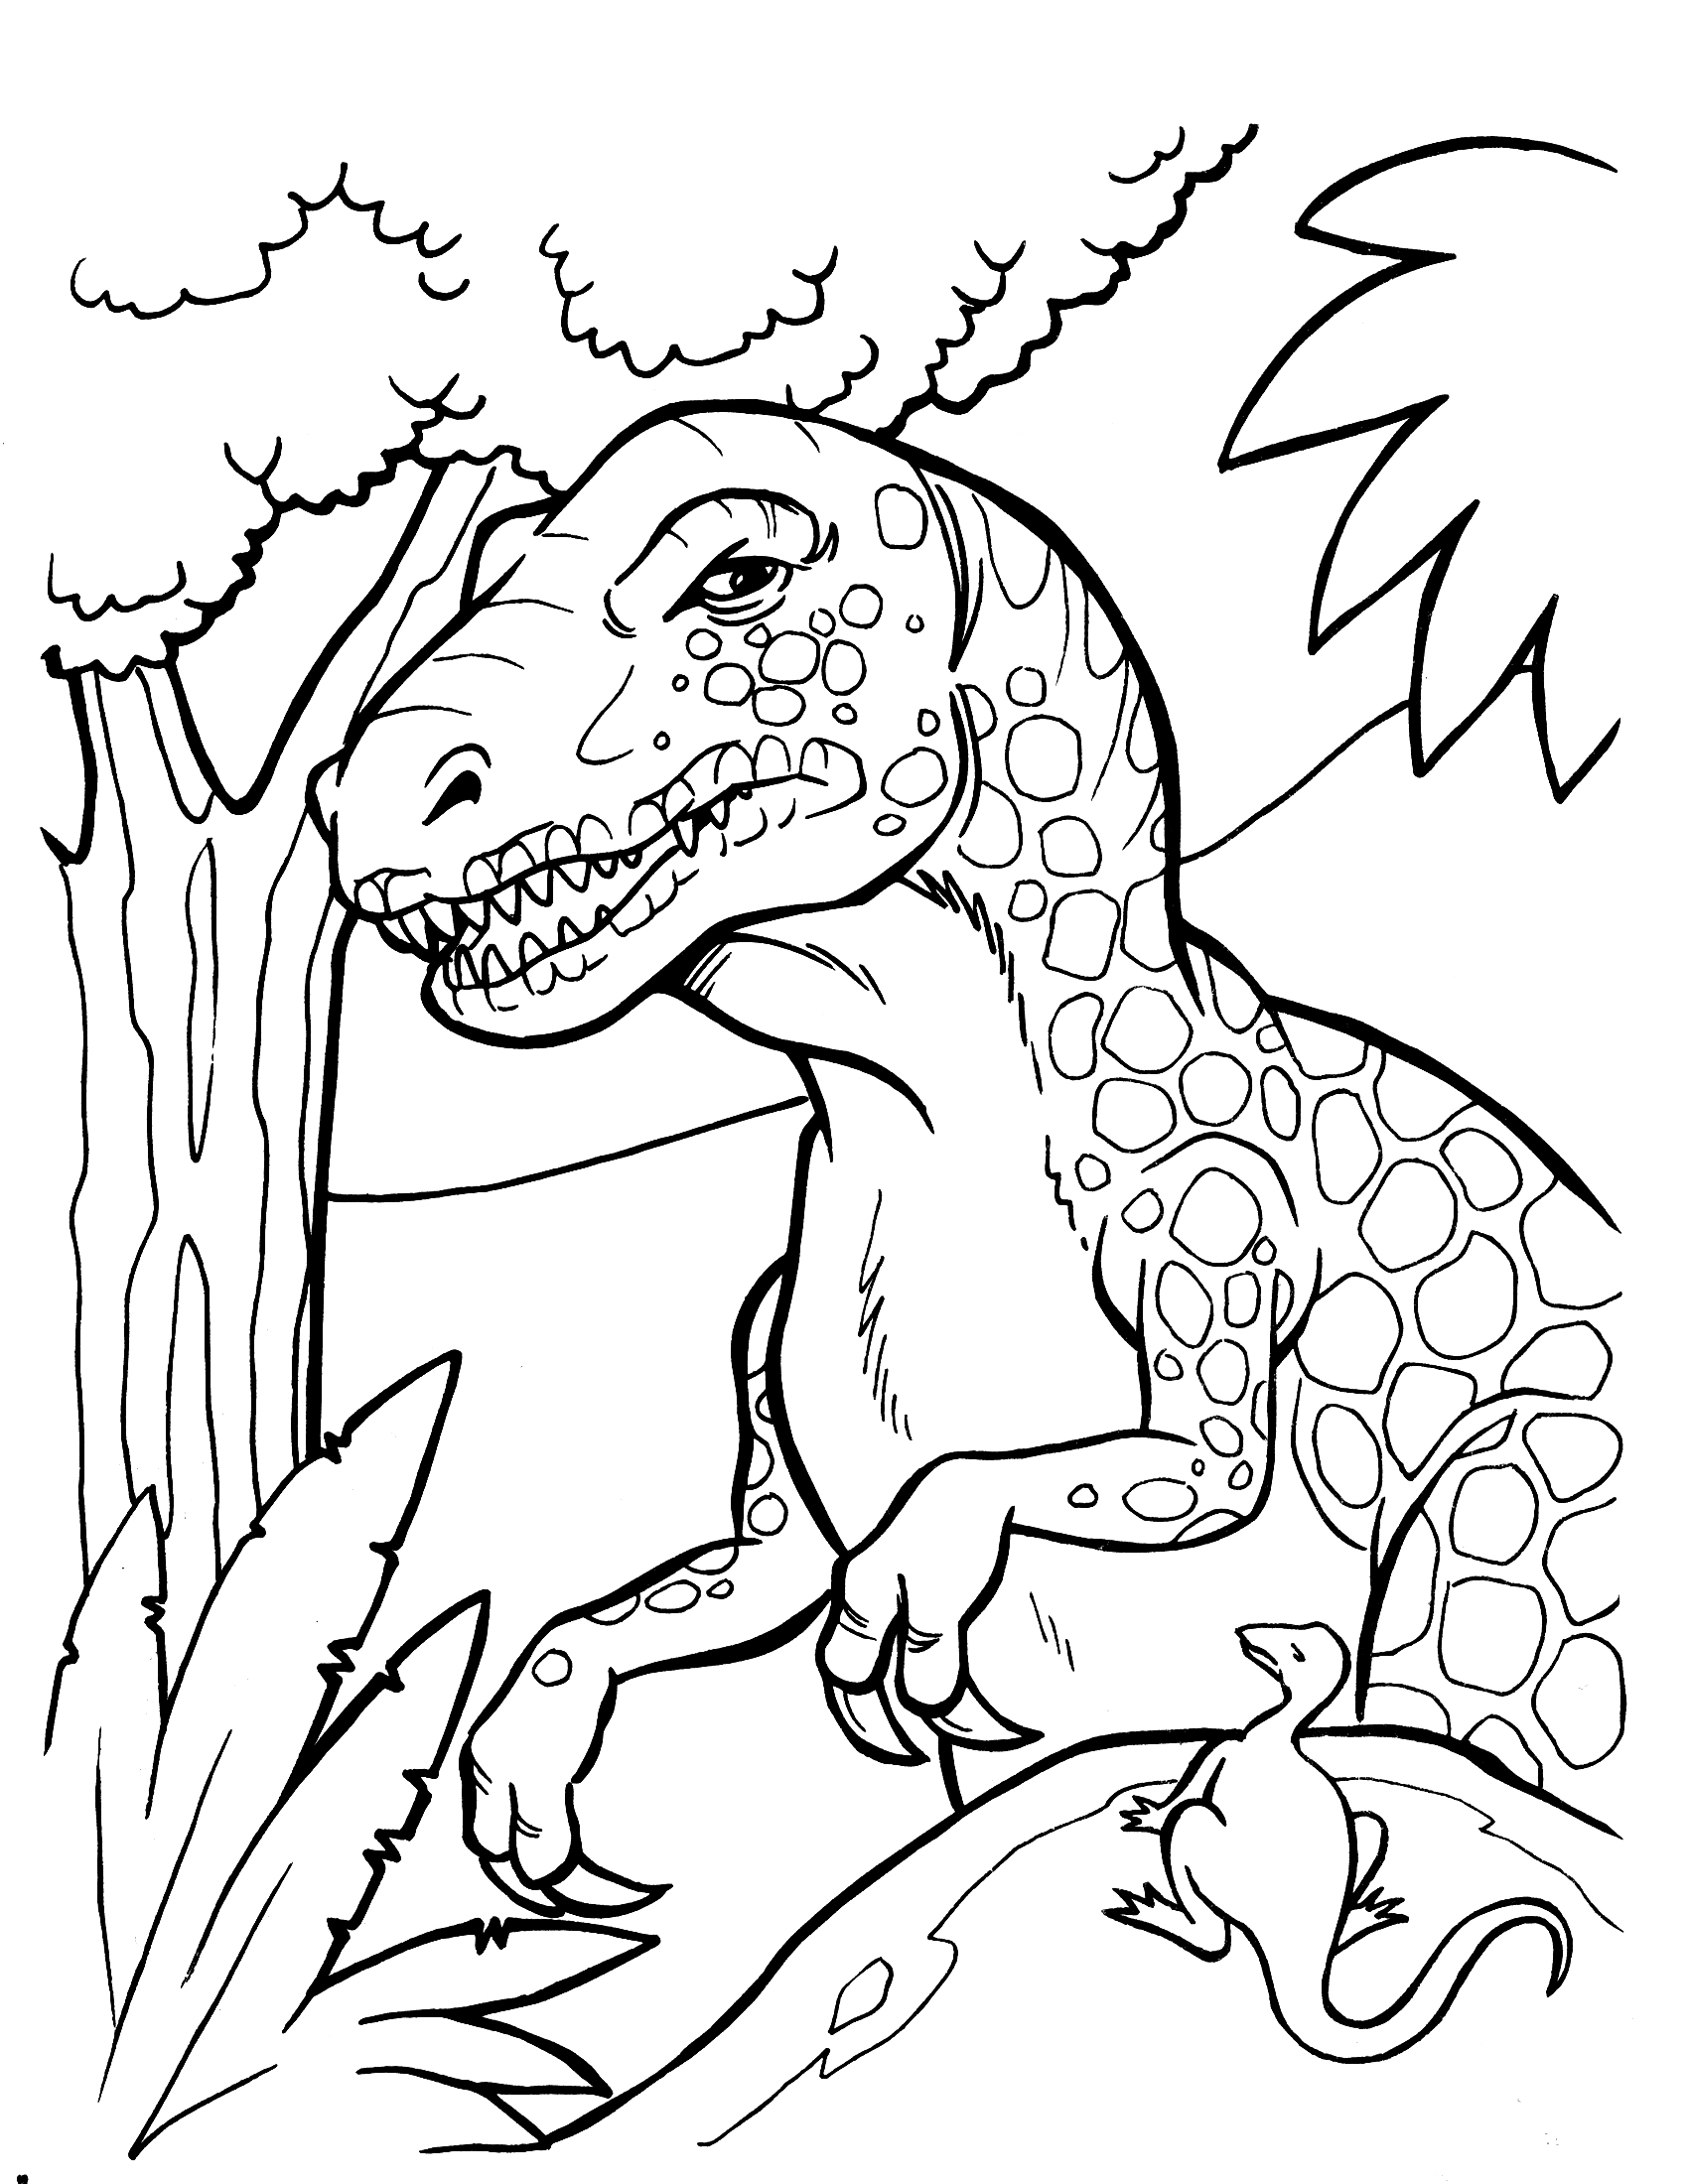 printable pictures of dinosaurs dinosaurs to color for kids ba dinosaurs kids coloring of pictures dinosaurs printable